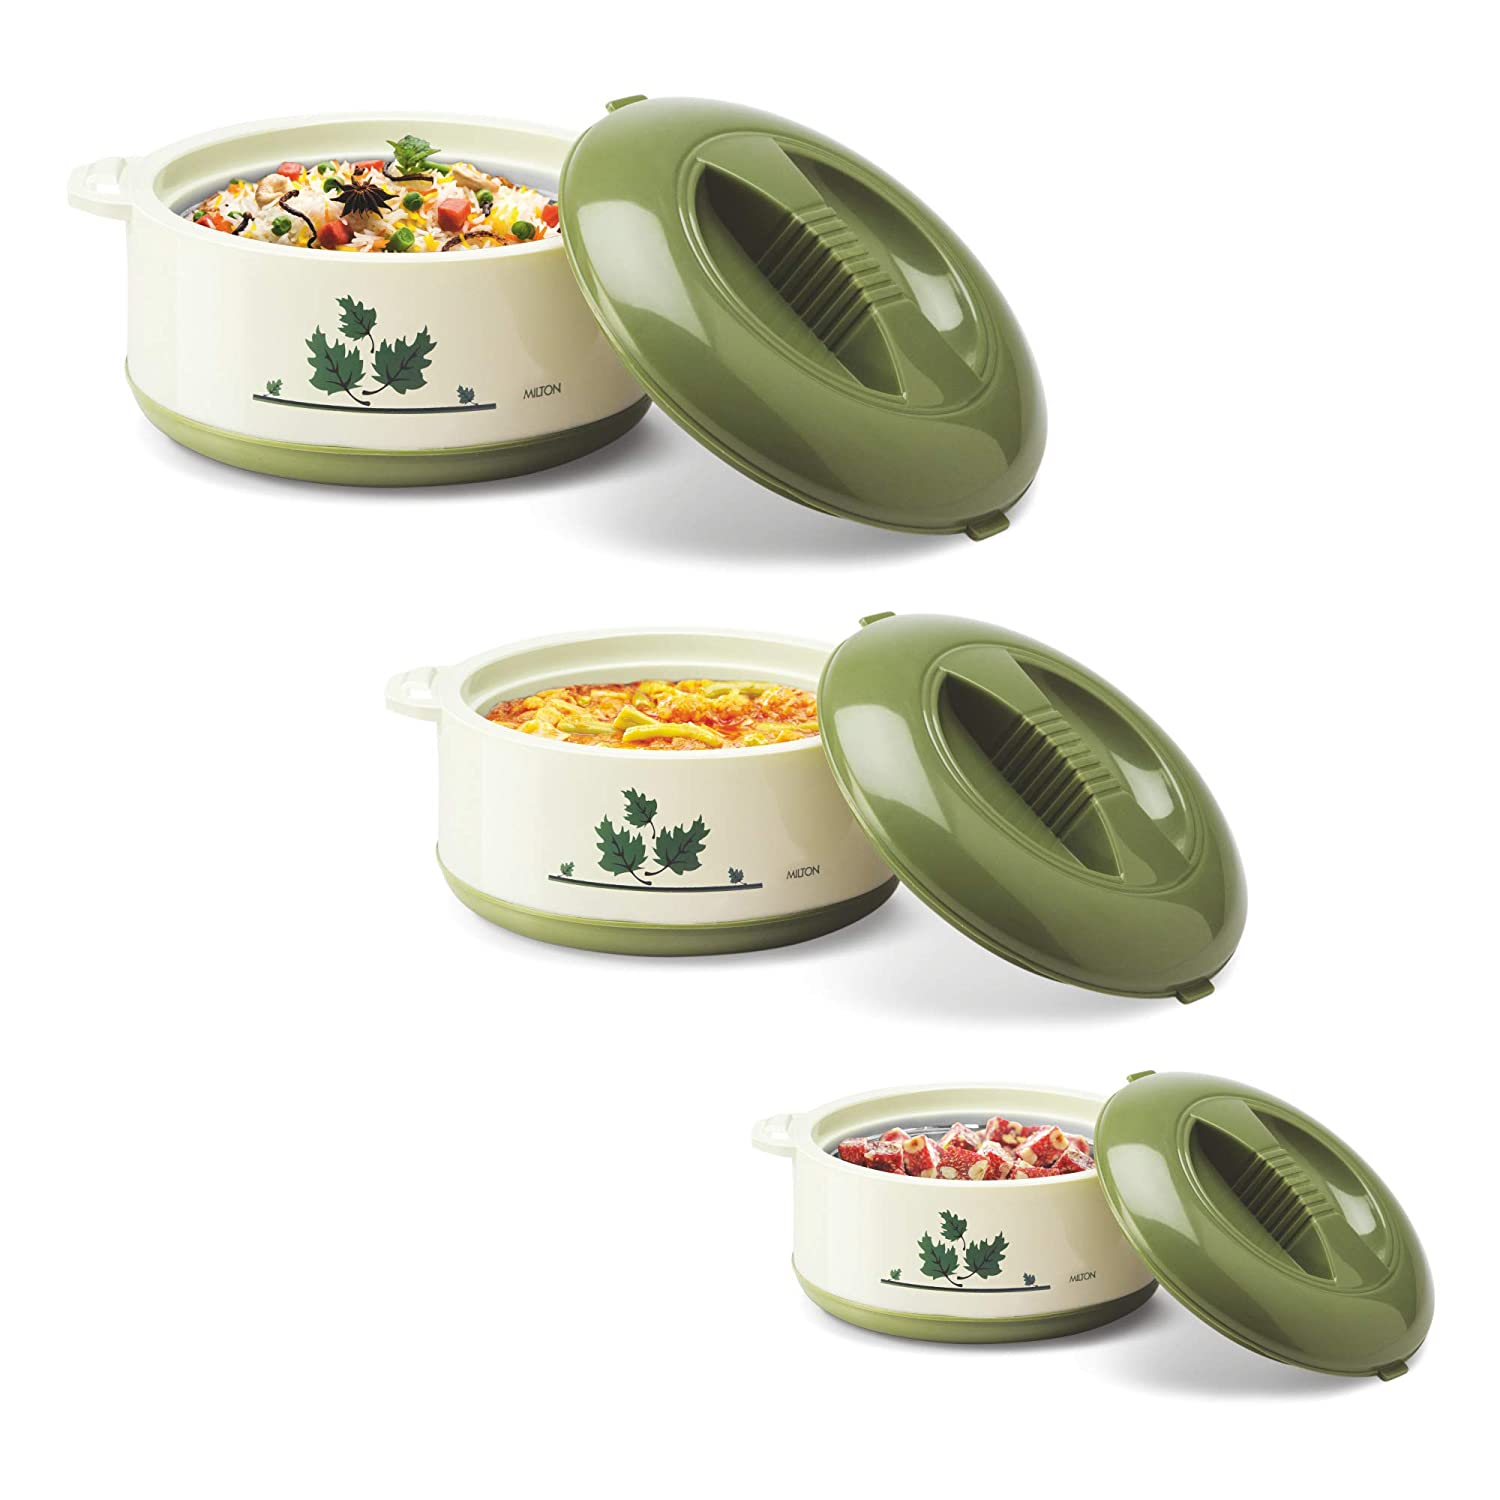 Milton Orchid Jr. Inner Steel Casserole Gift Set of 3, Green Serving Casseroles   Tureens